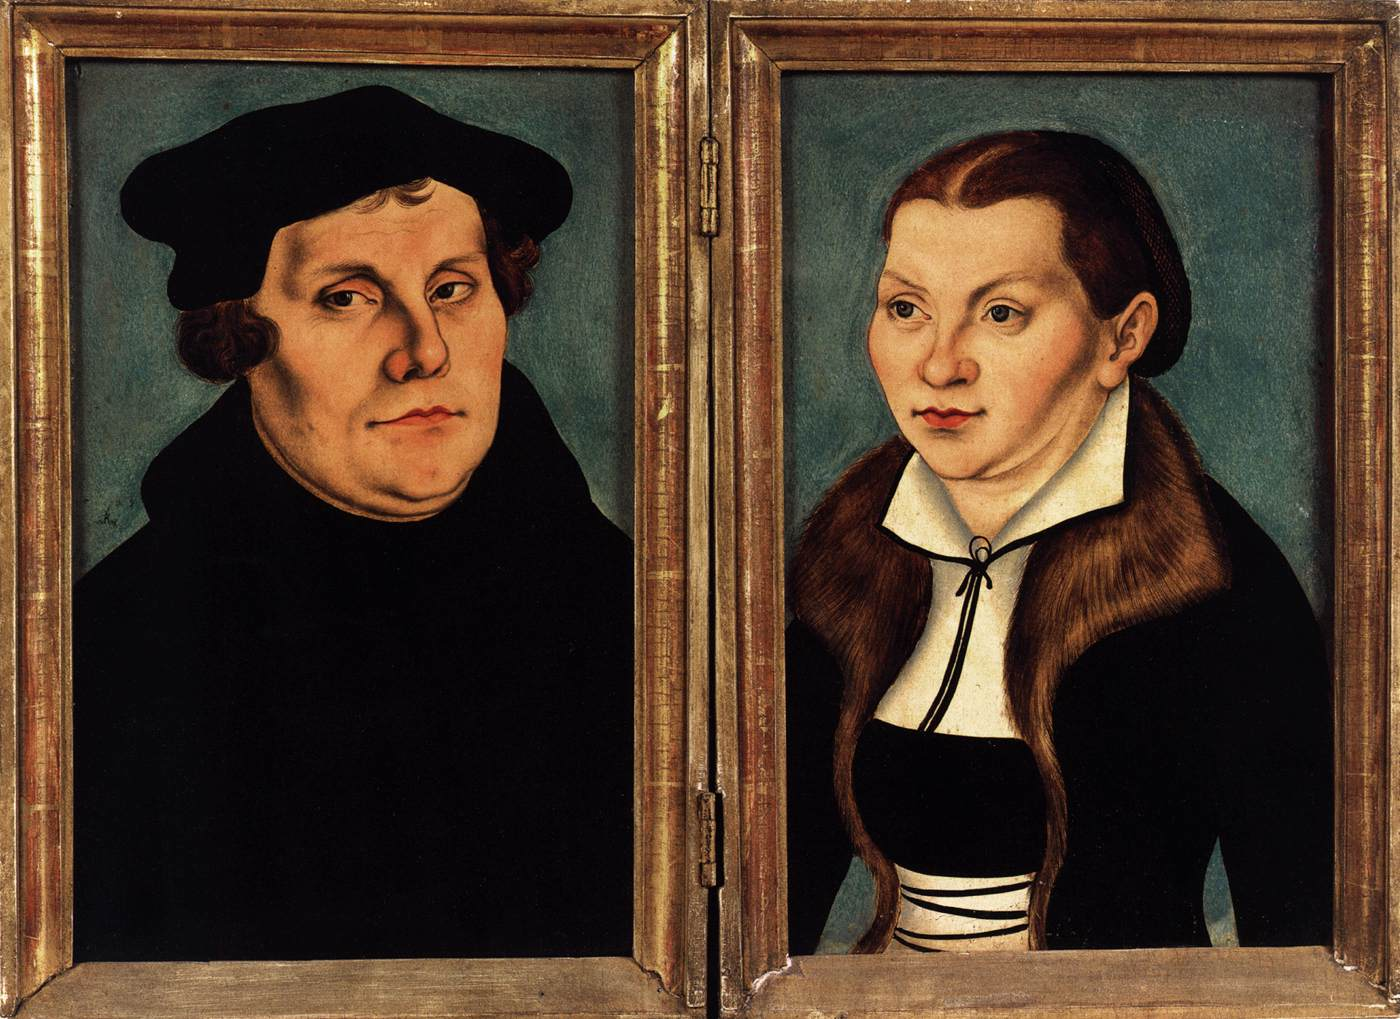 Lucas Cranach the Elder (workshop), Diptych with the Portraits of Luther and his Wife, 1529